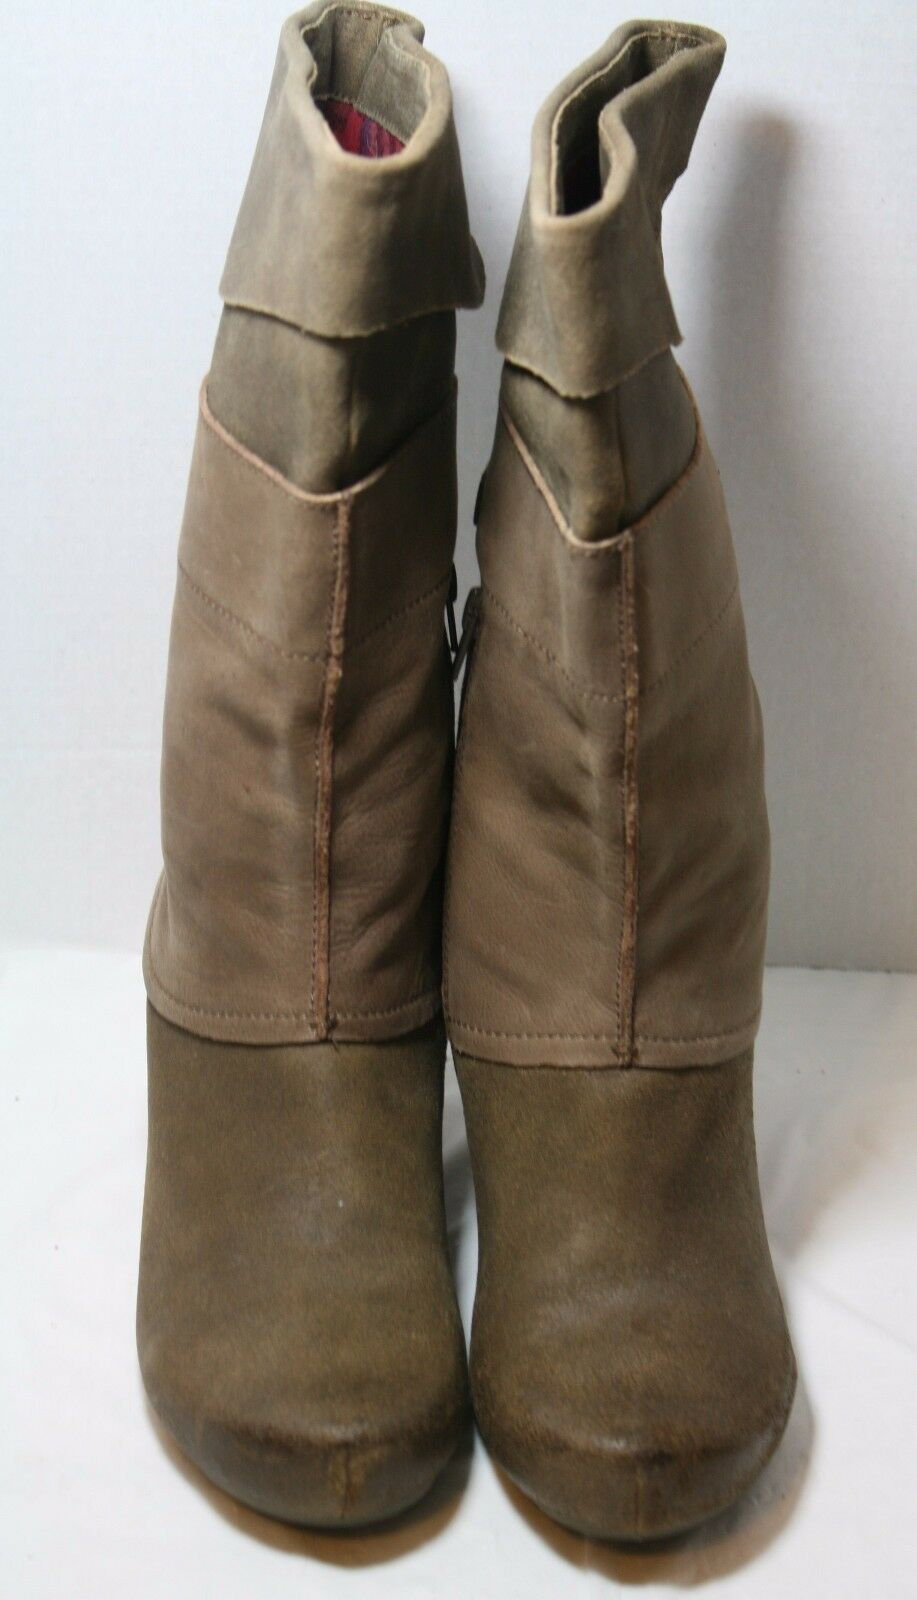 OTBT Schuhe ROSWELL Stiefel MUD LEATHER 8.5 MID 225 CALF ROUND TOE 225 MID 05f7ca